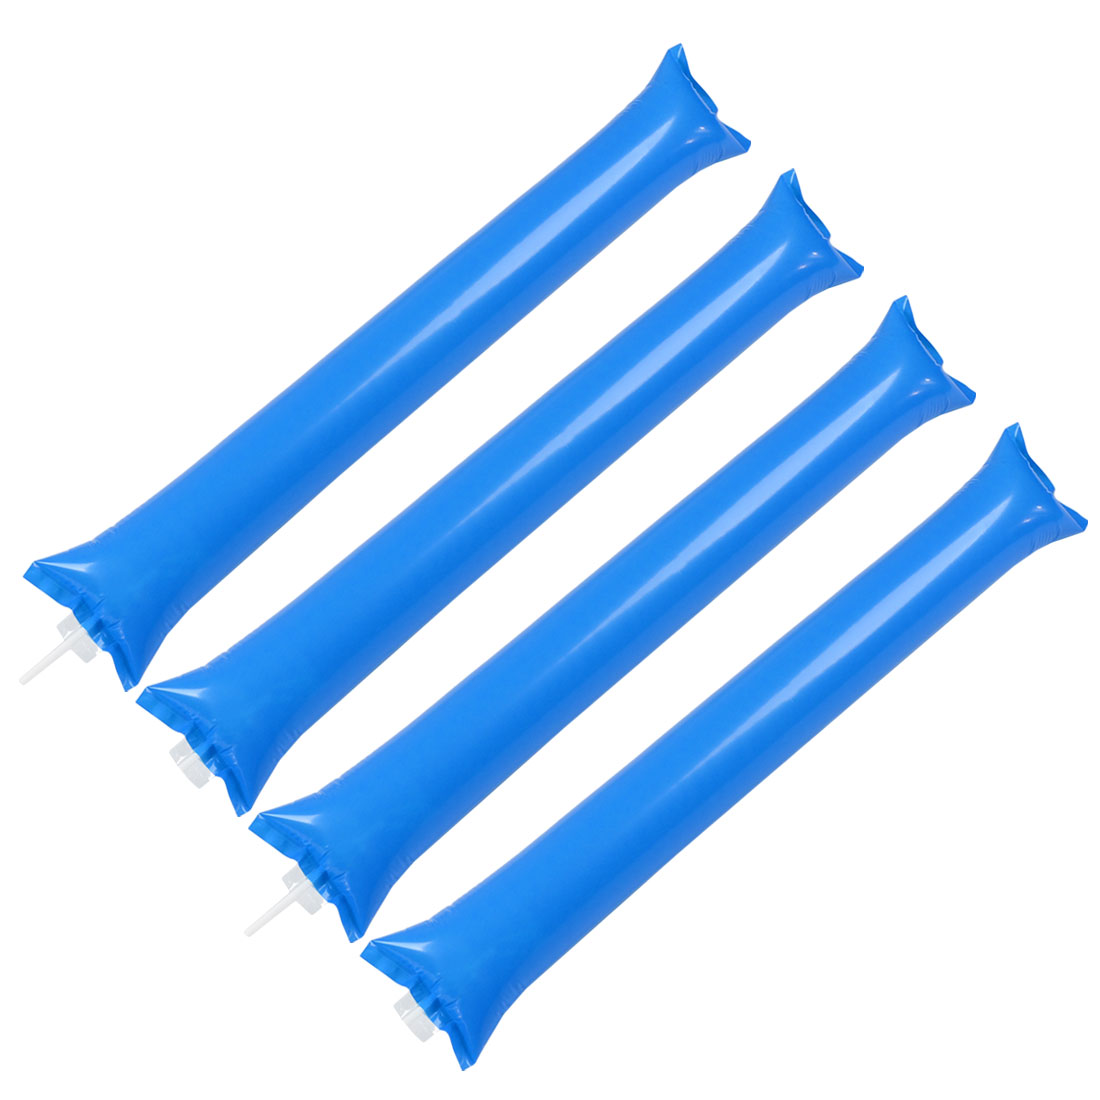 4 Pcs Blue Plastic Inflatable Sport Match Vocal Concert Cheer Balloons Stick